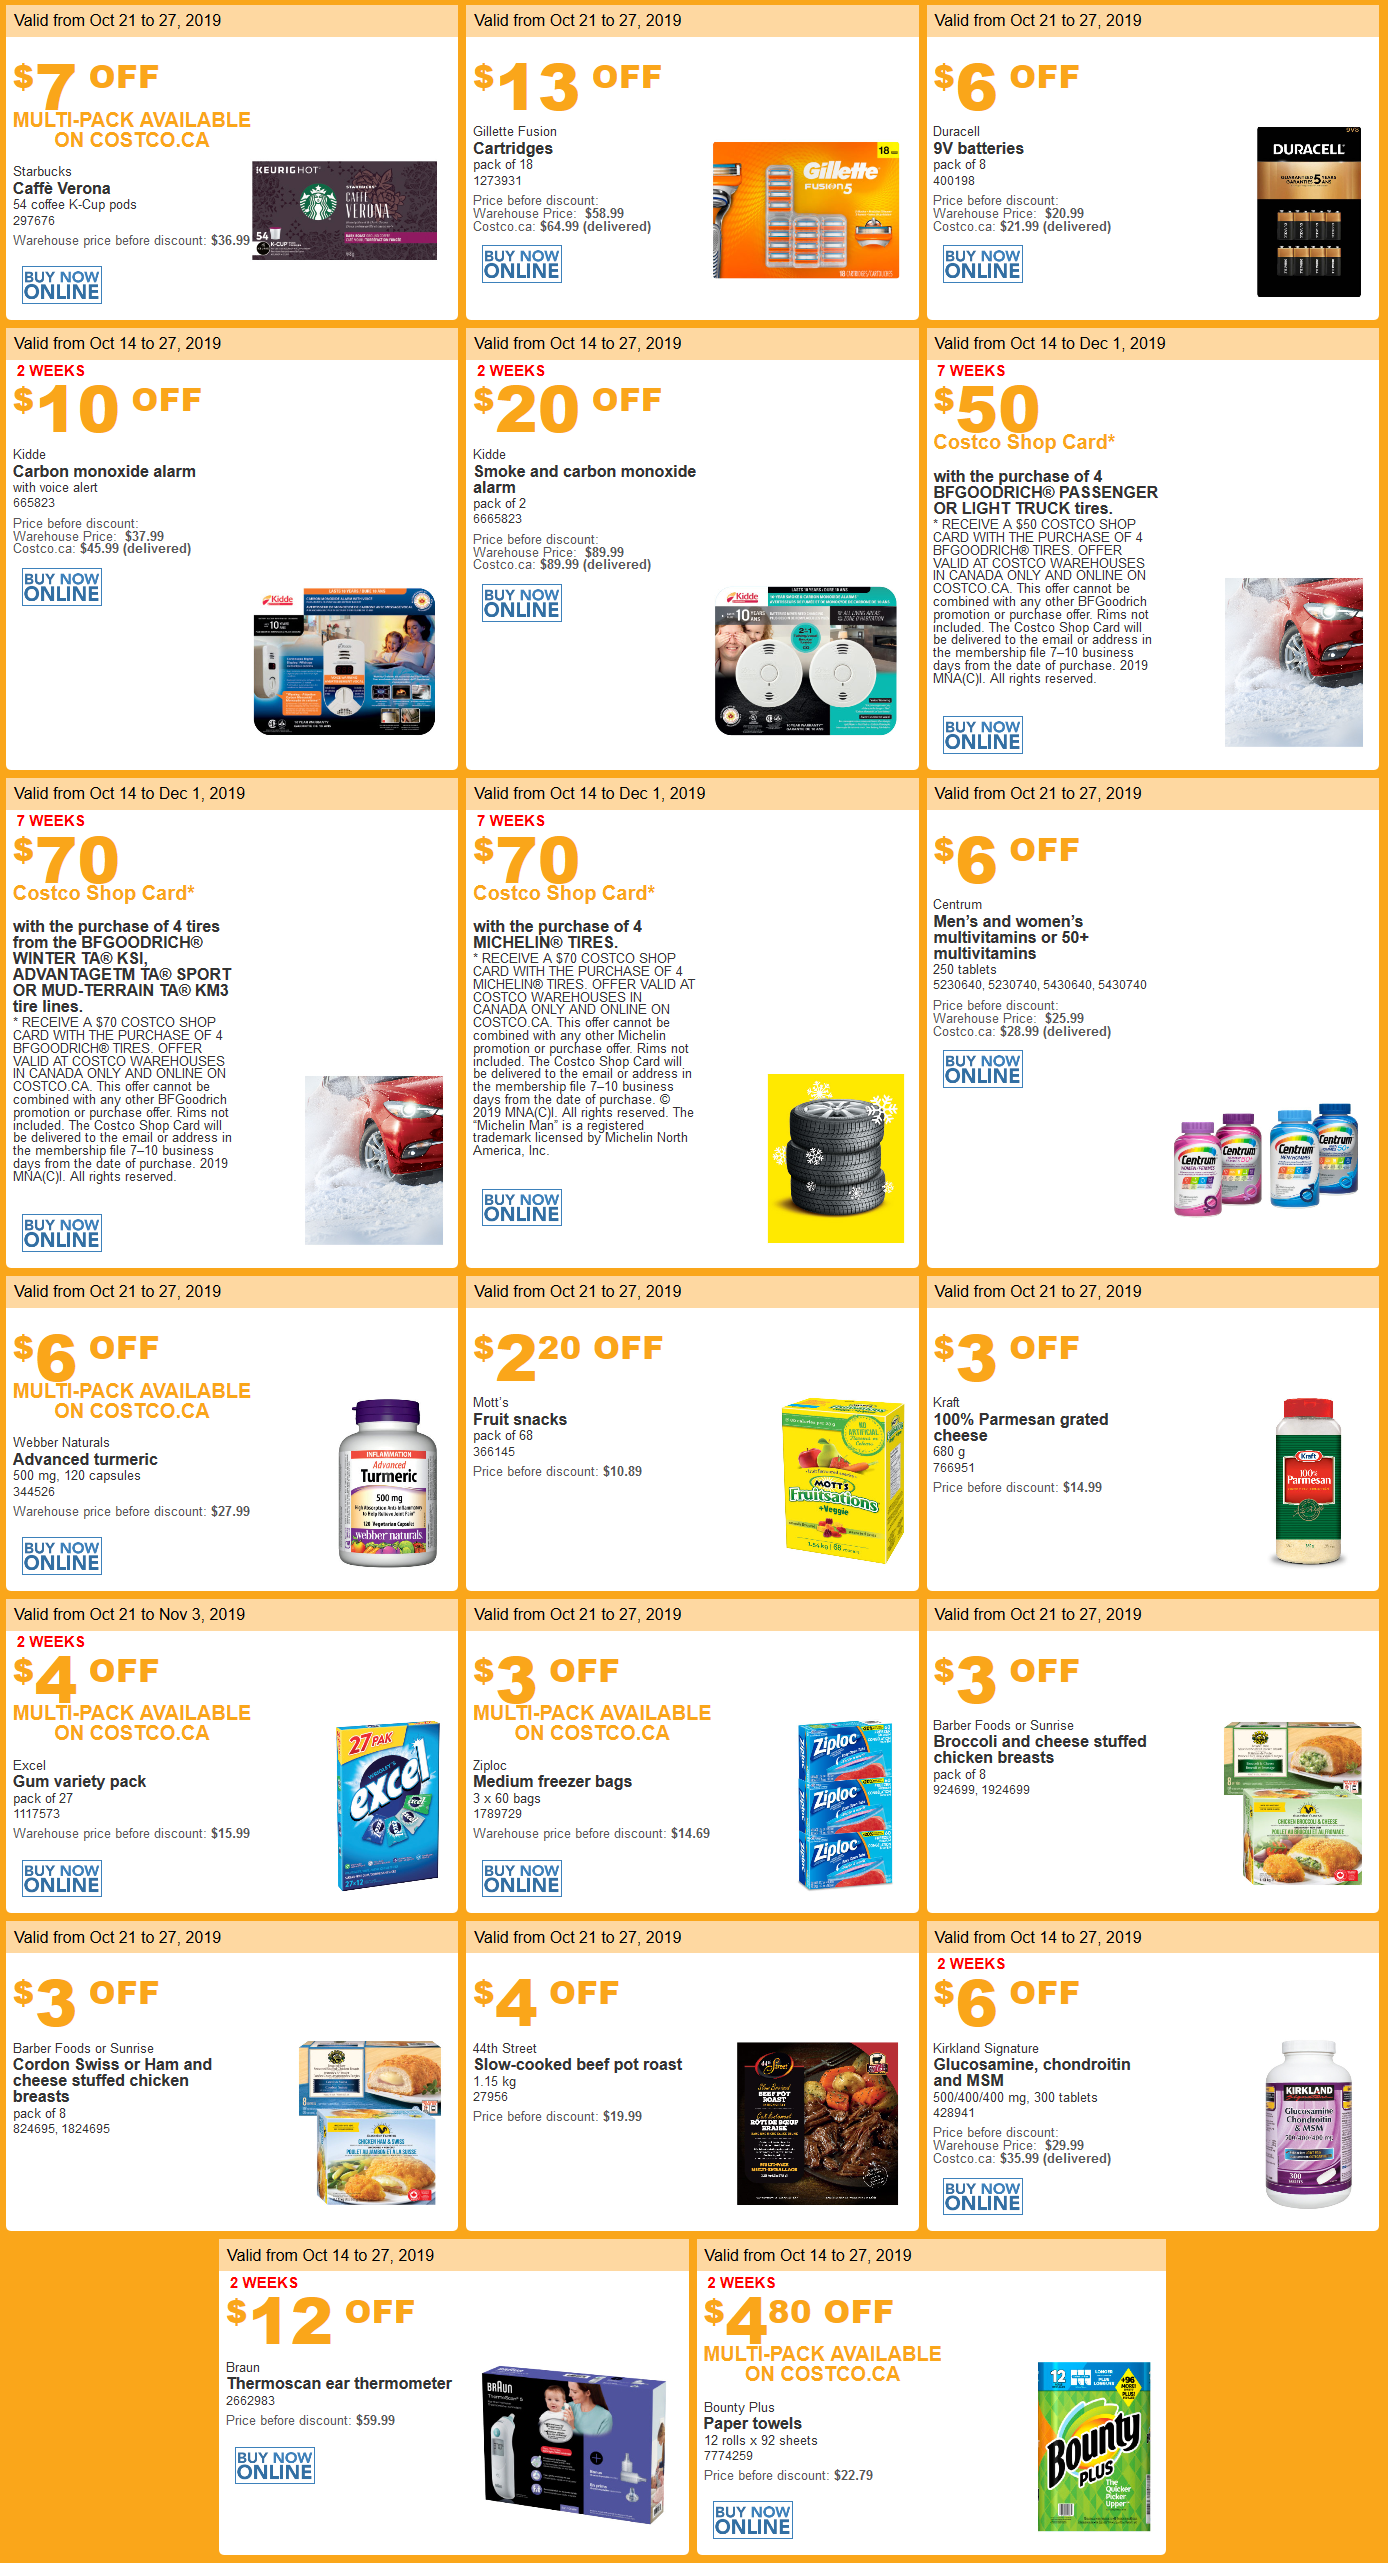 Costco Flyer sales Oct 21st - 27th 2019